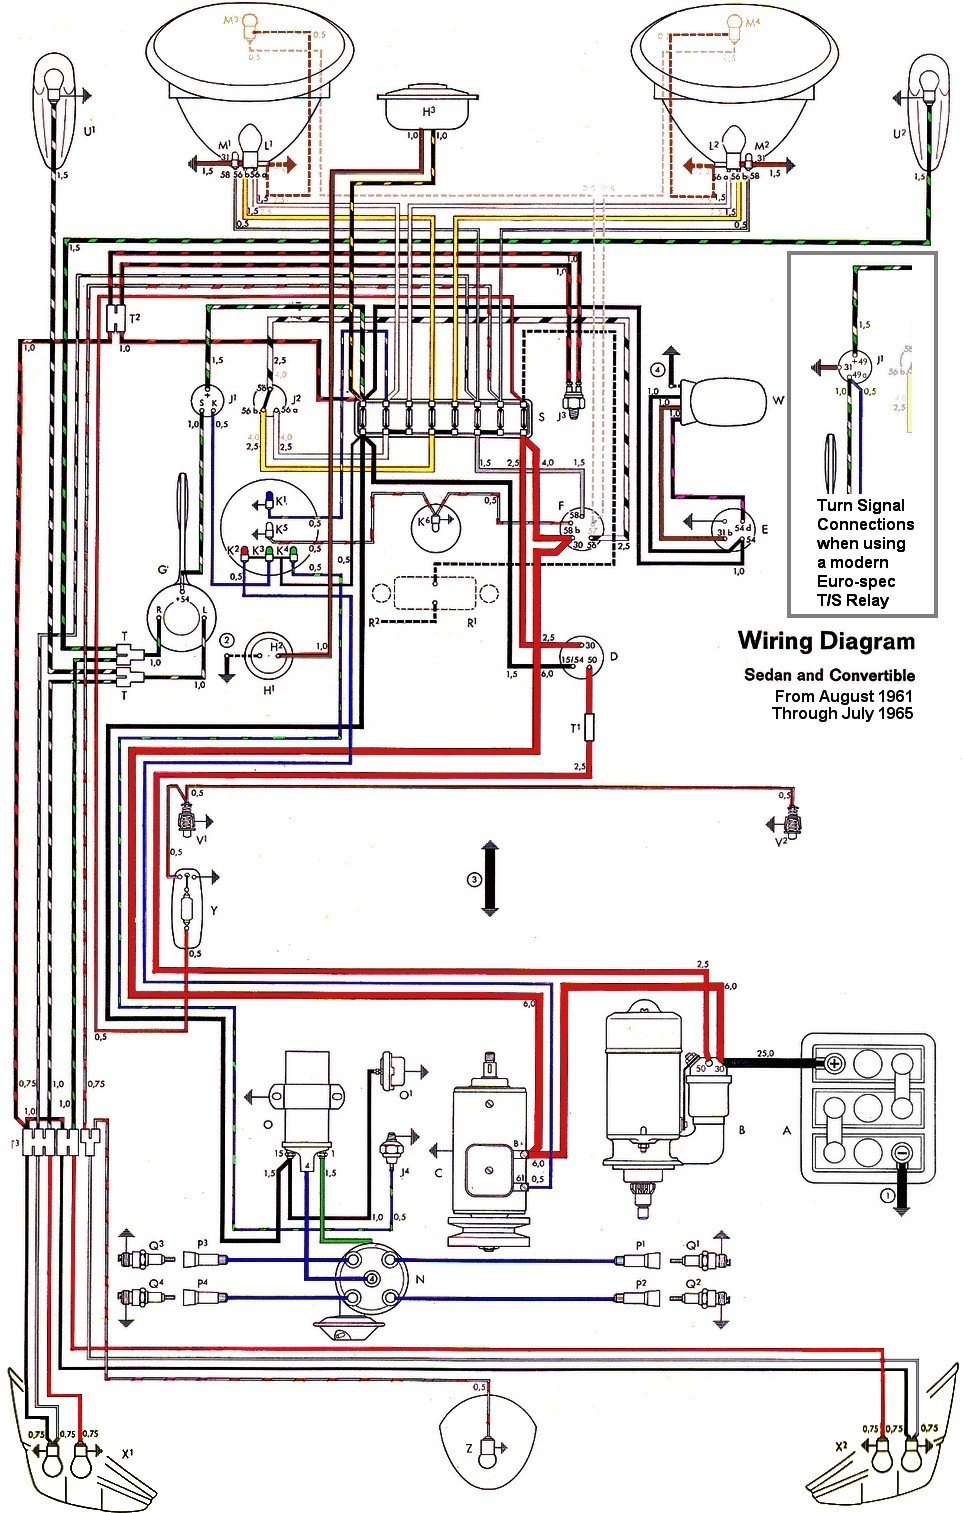 1974 Super Beetle Wiring Diagram Libraries Raypak Boiler 183 1973 Vw Todaysthesamba Com Type 1 Diagrams Oldsmobile